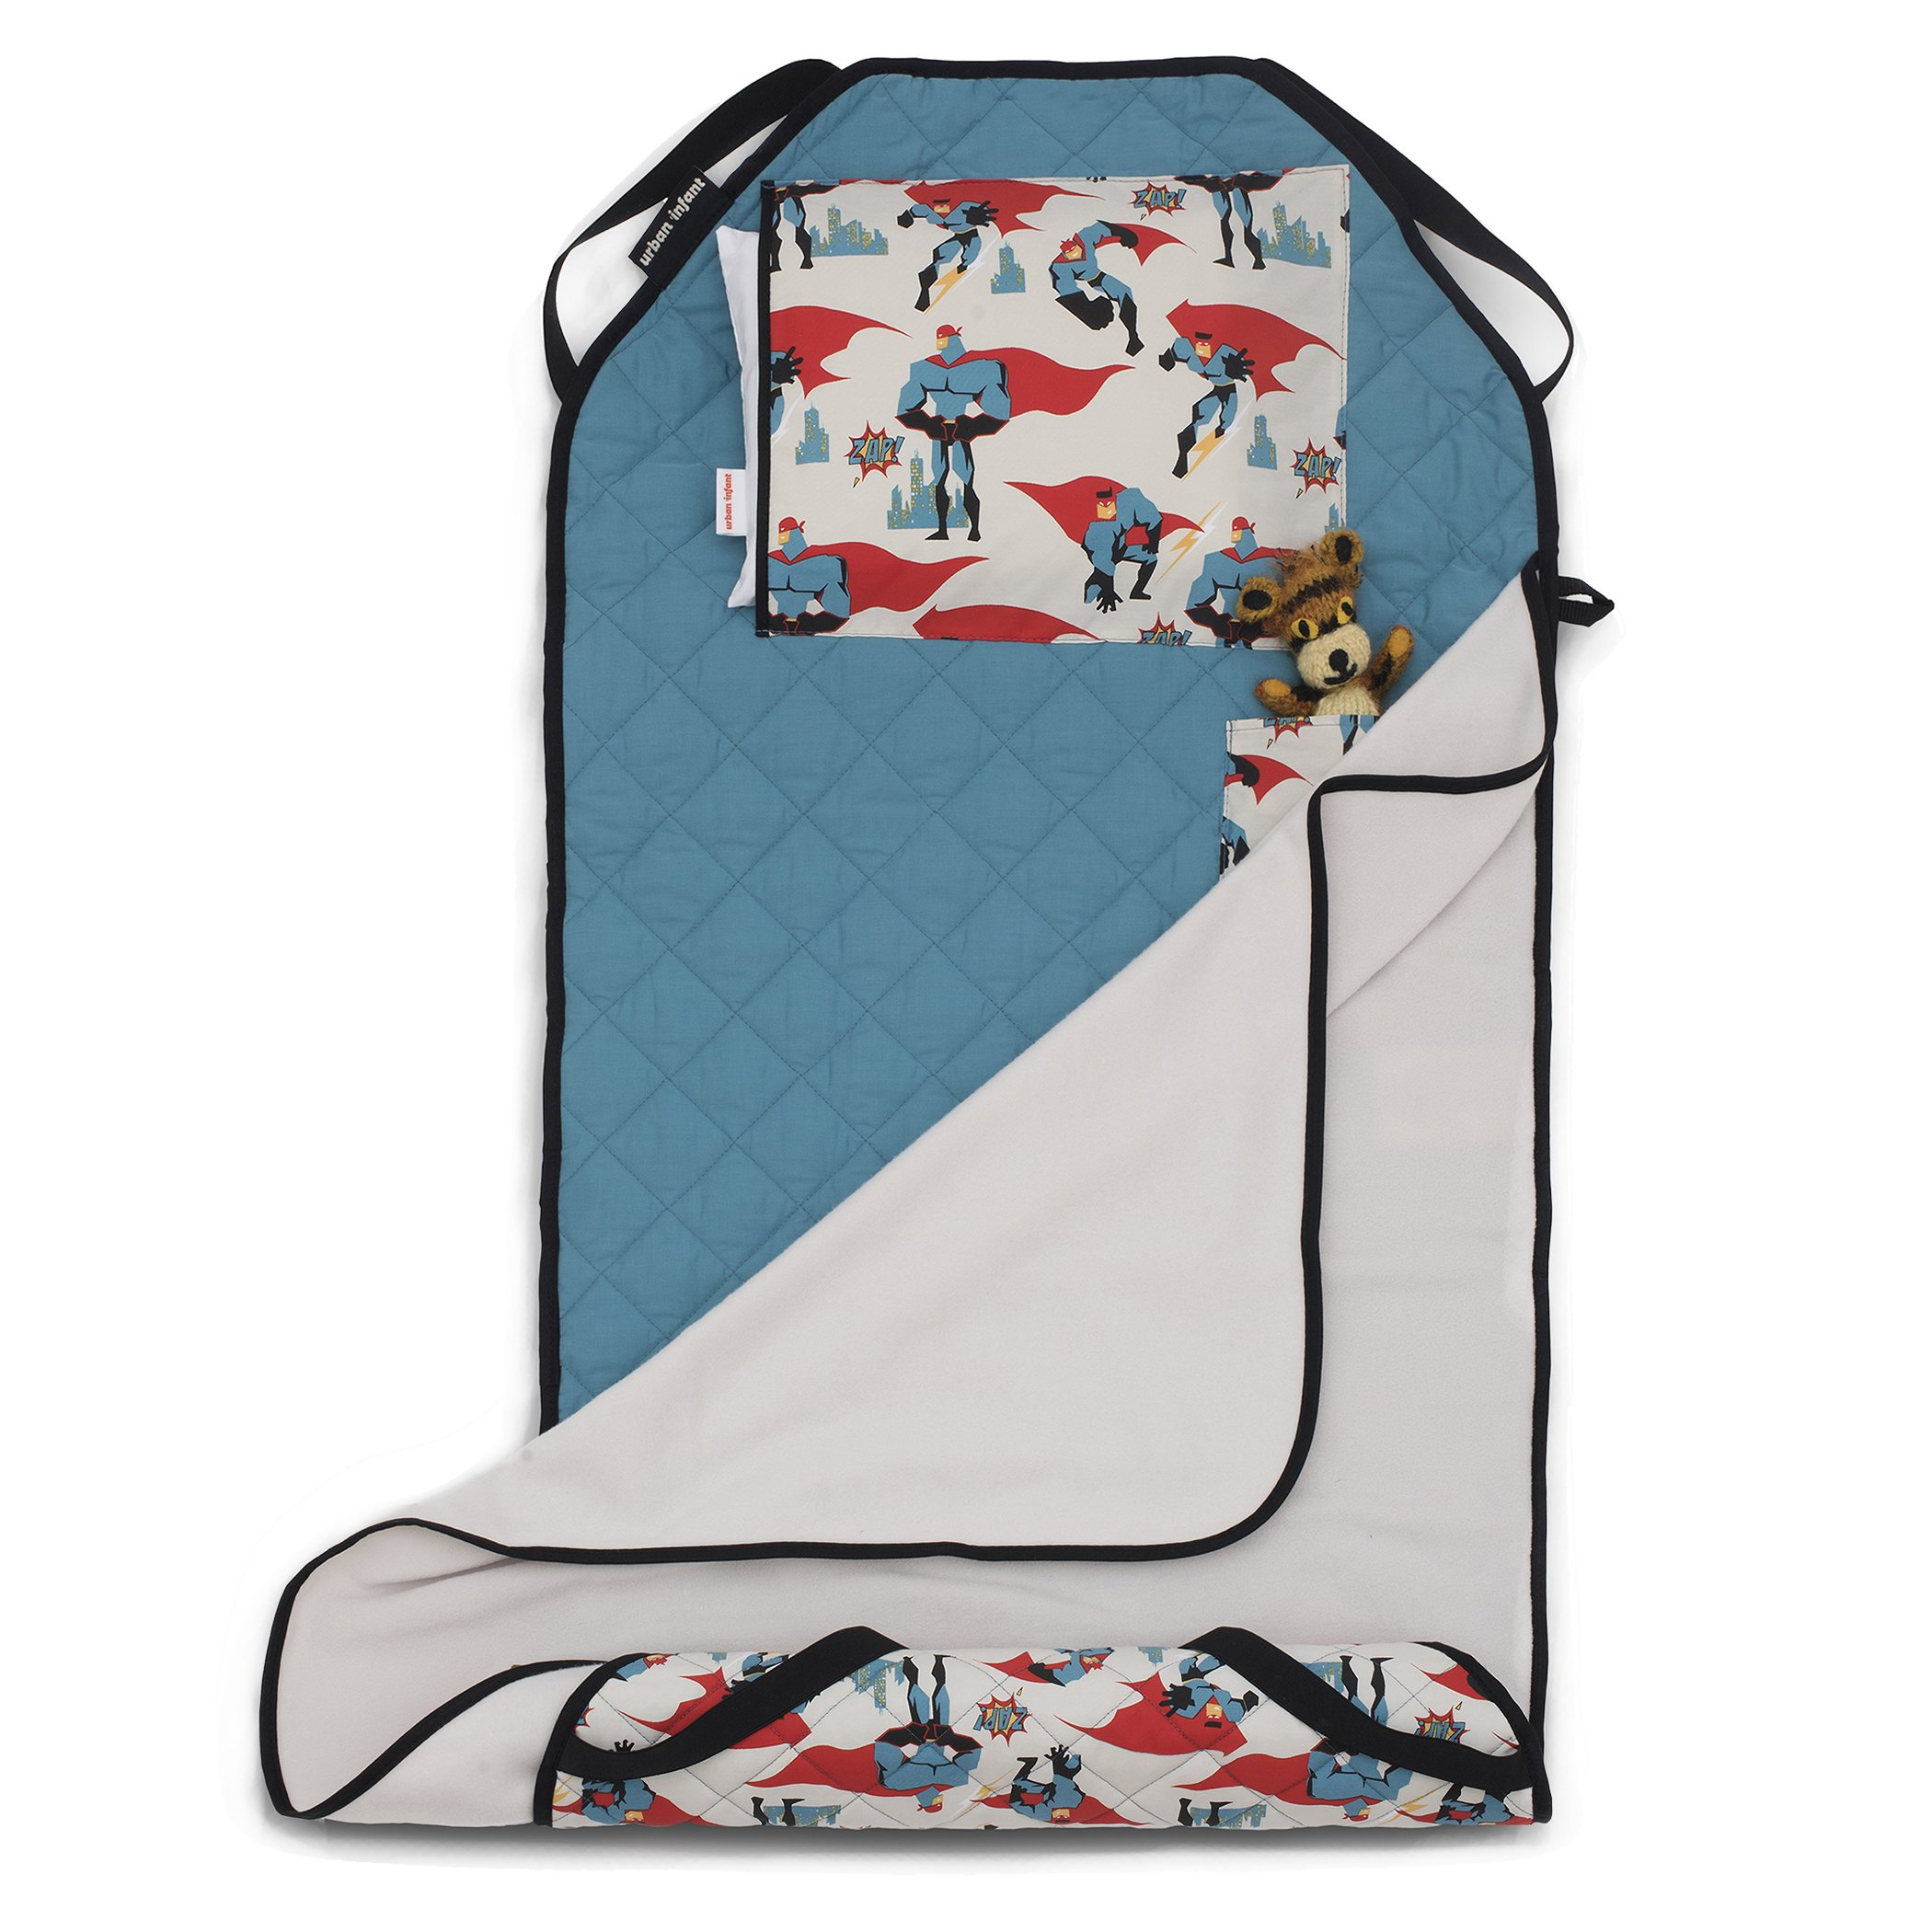 Urban Infant Tot Cot All-In-One Preschool/Daycare Toddler Nap Mat -Urban Dude